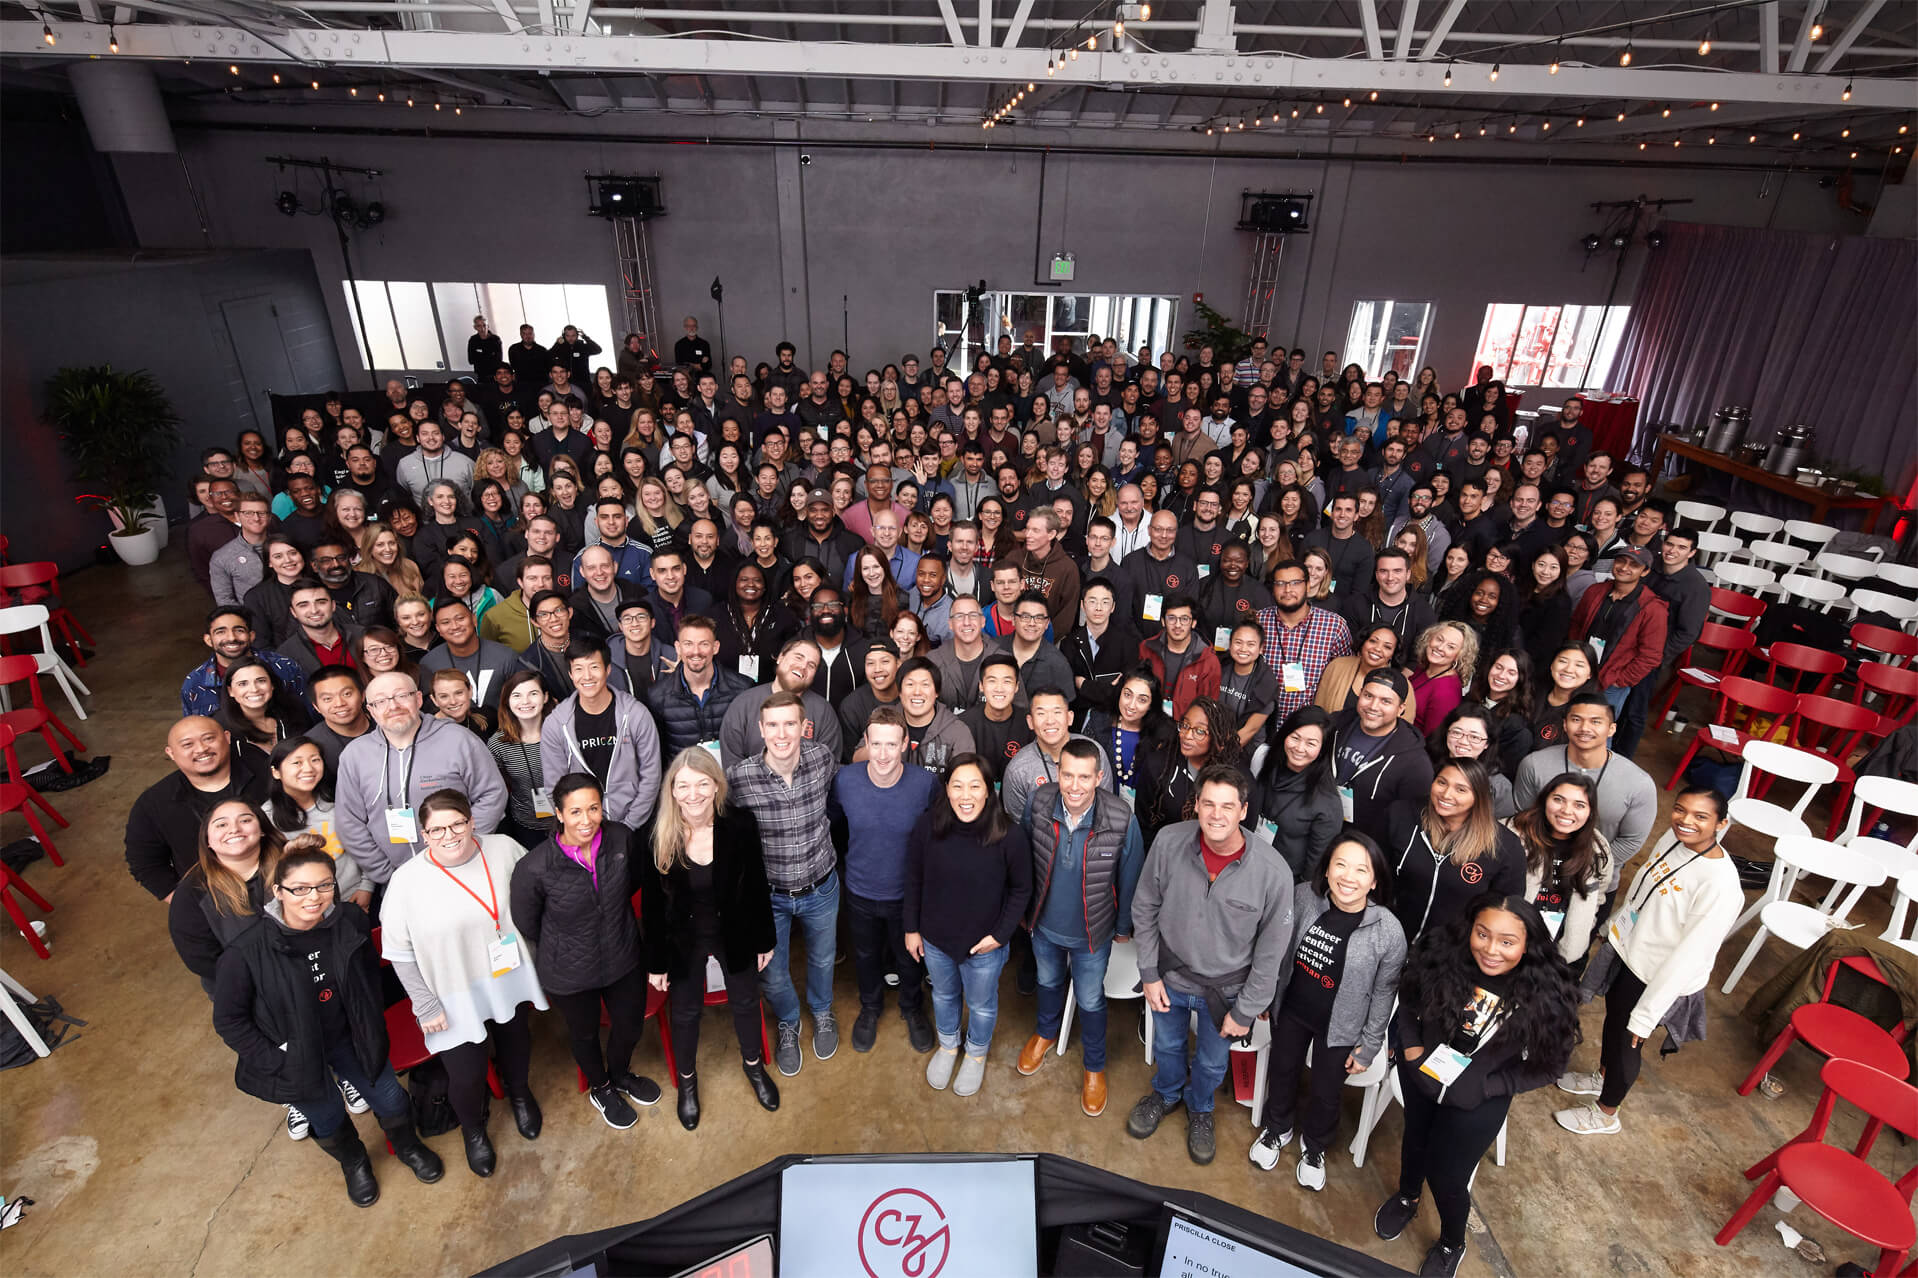 A group photo of the Chan Zuckerberg Initiative employees with Priscilla Chan and Mark Zuckerberg